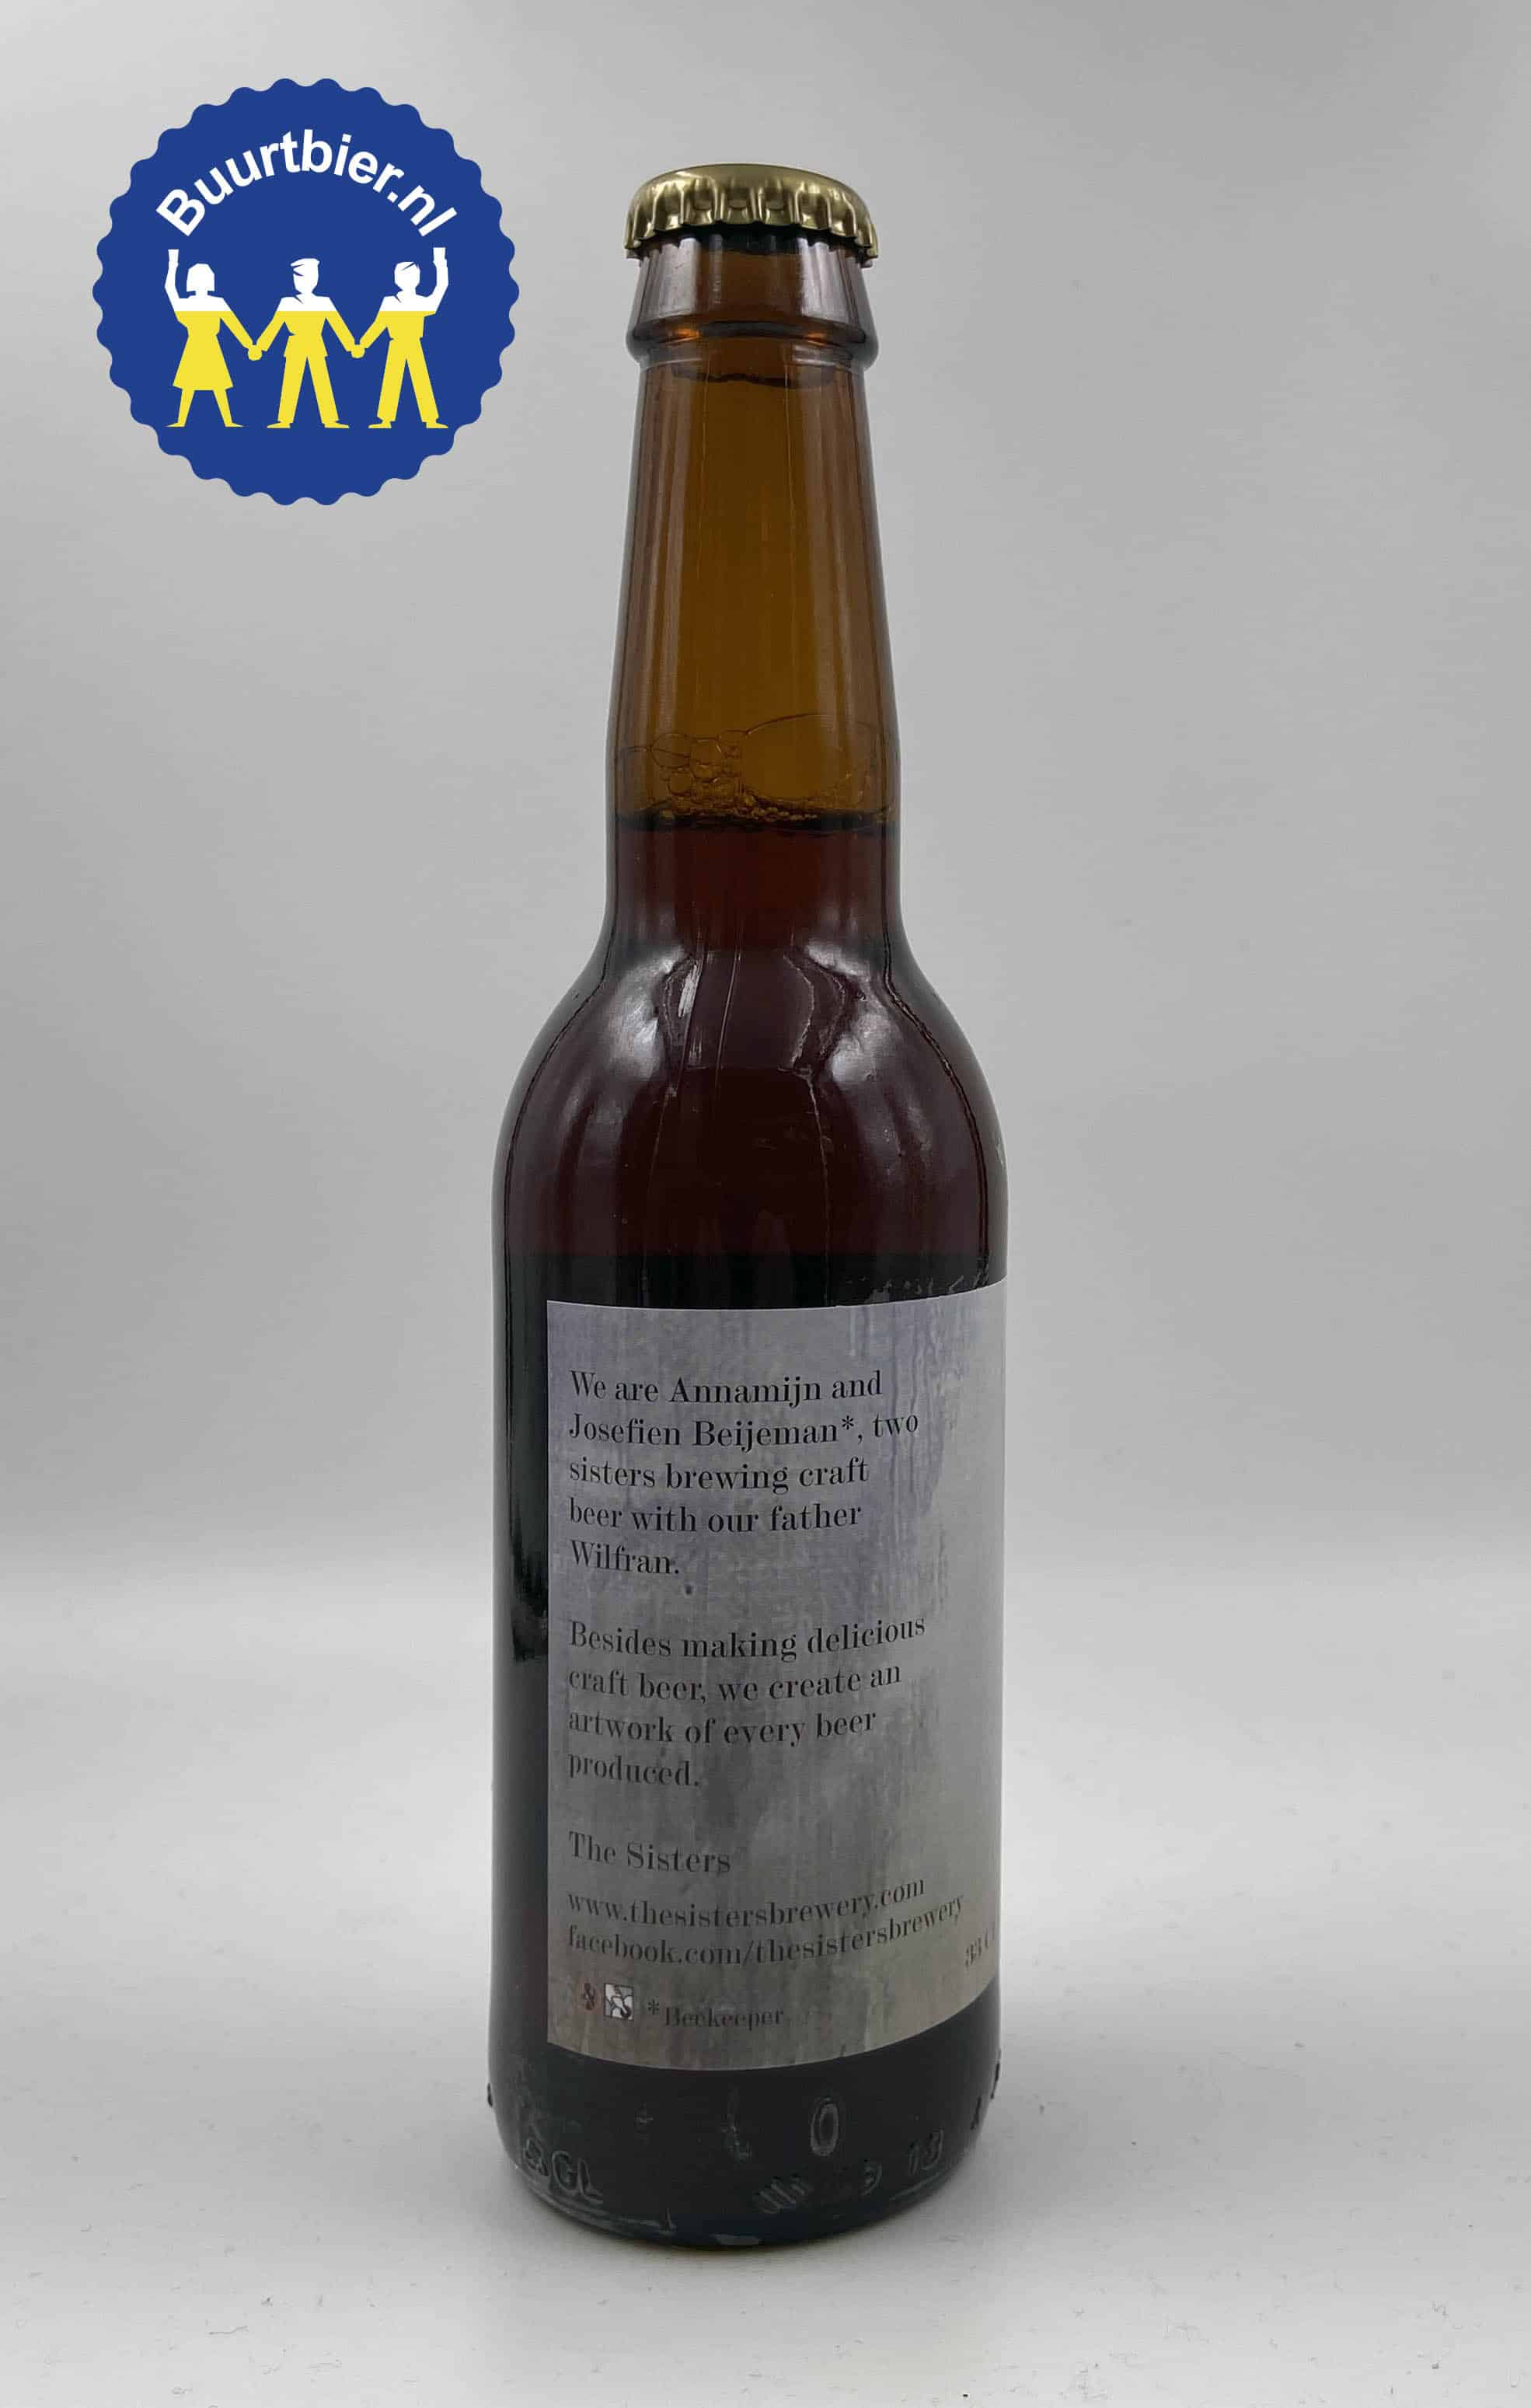 Nectar Barley Wine 33cl - The Sisters Brewery